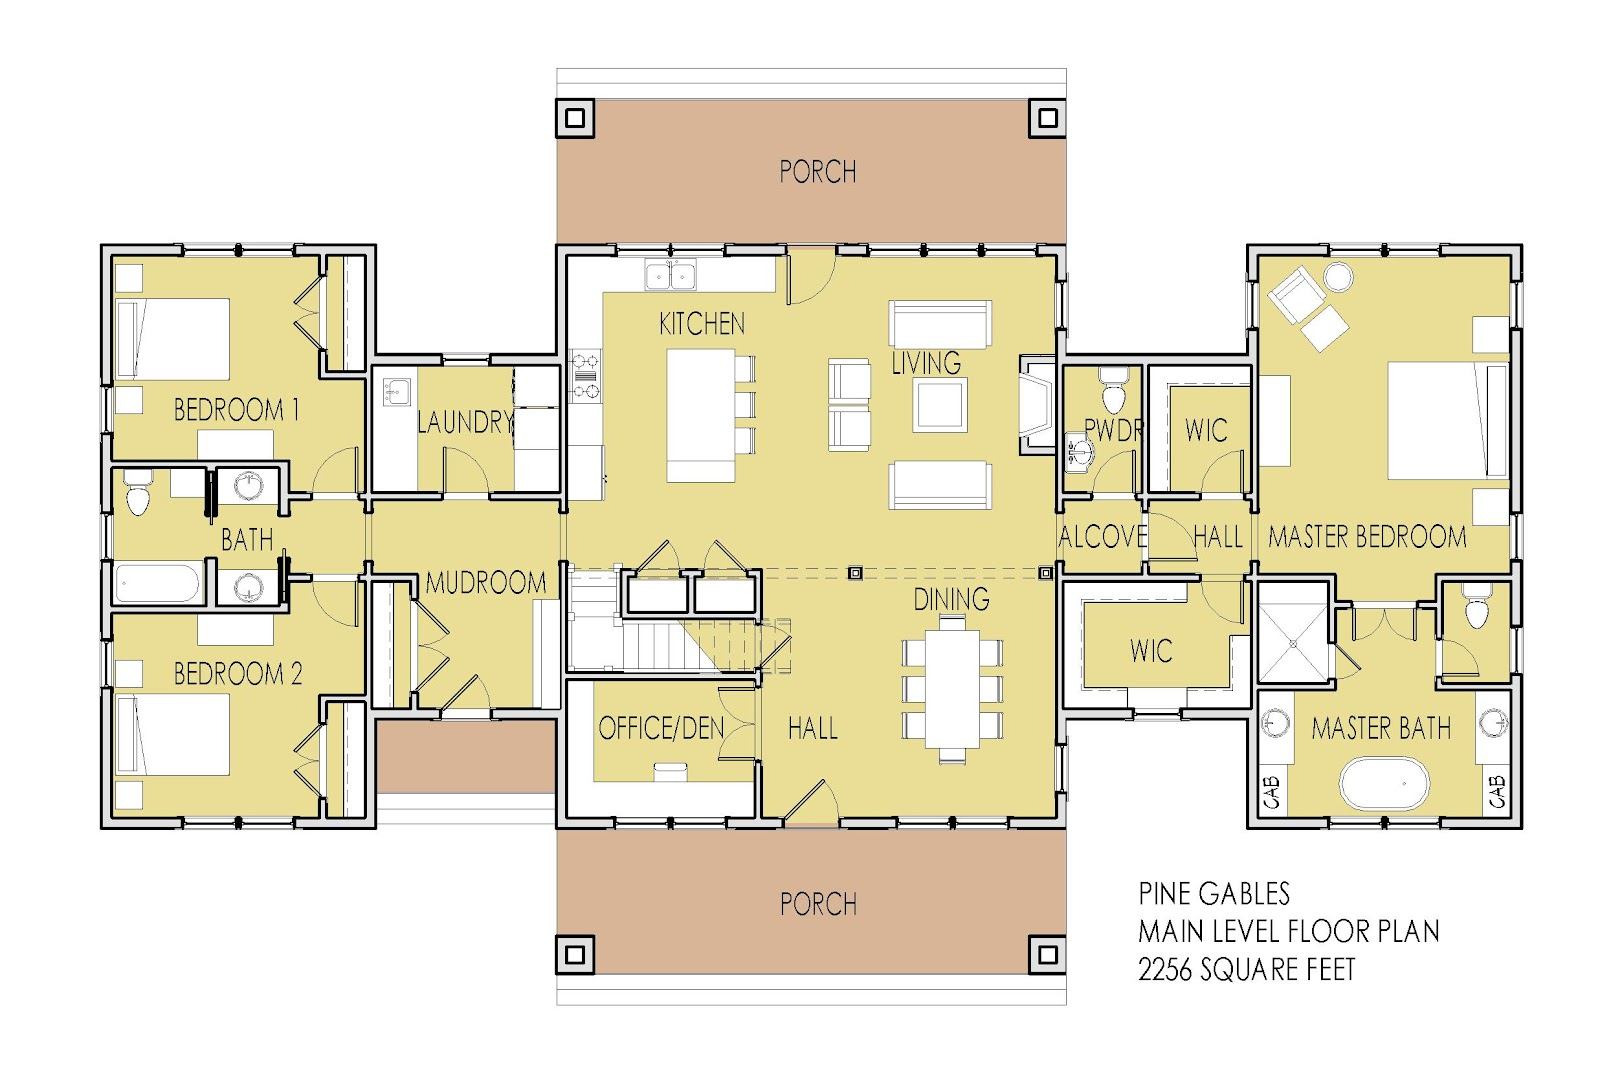 House Floor Plans with 2 Master Suites